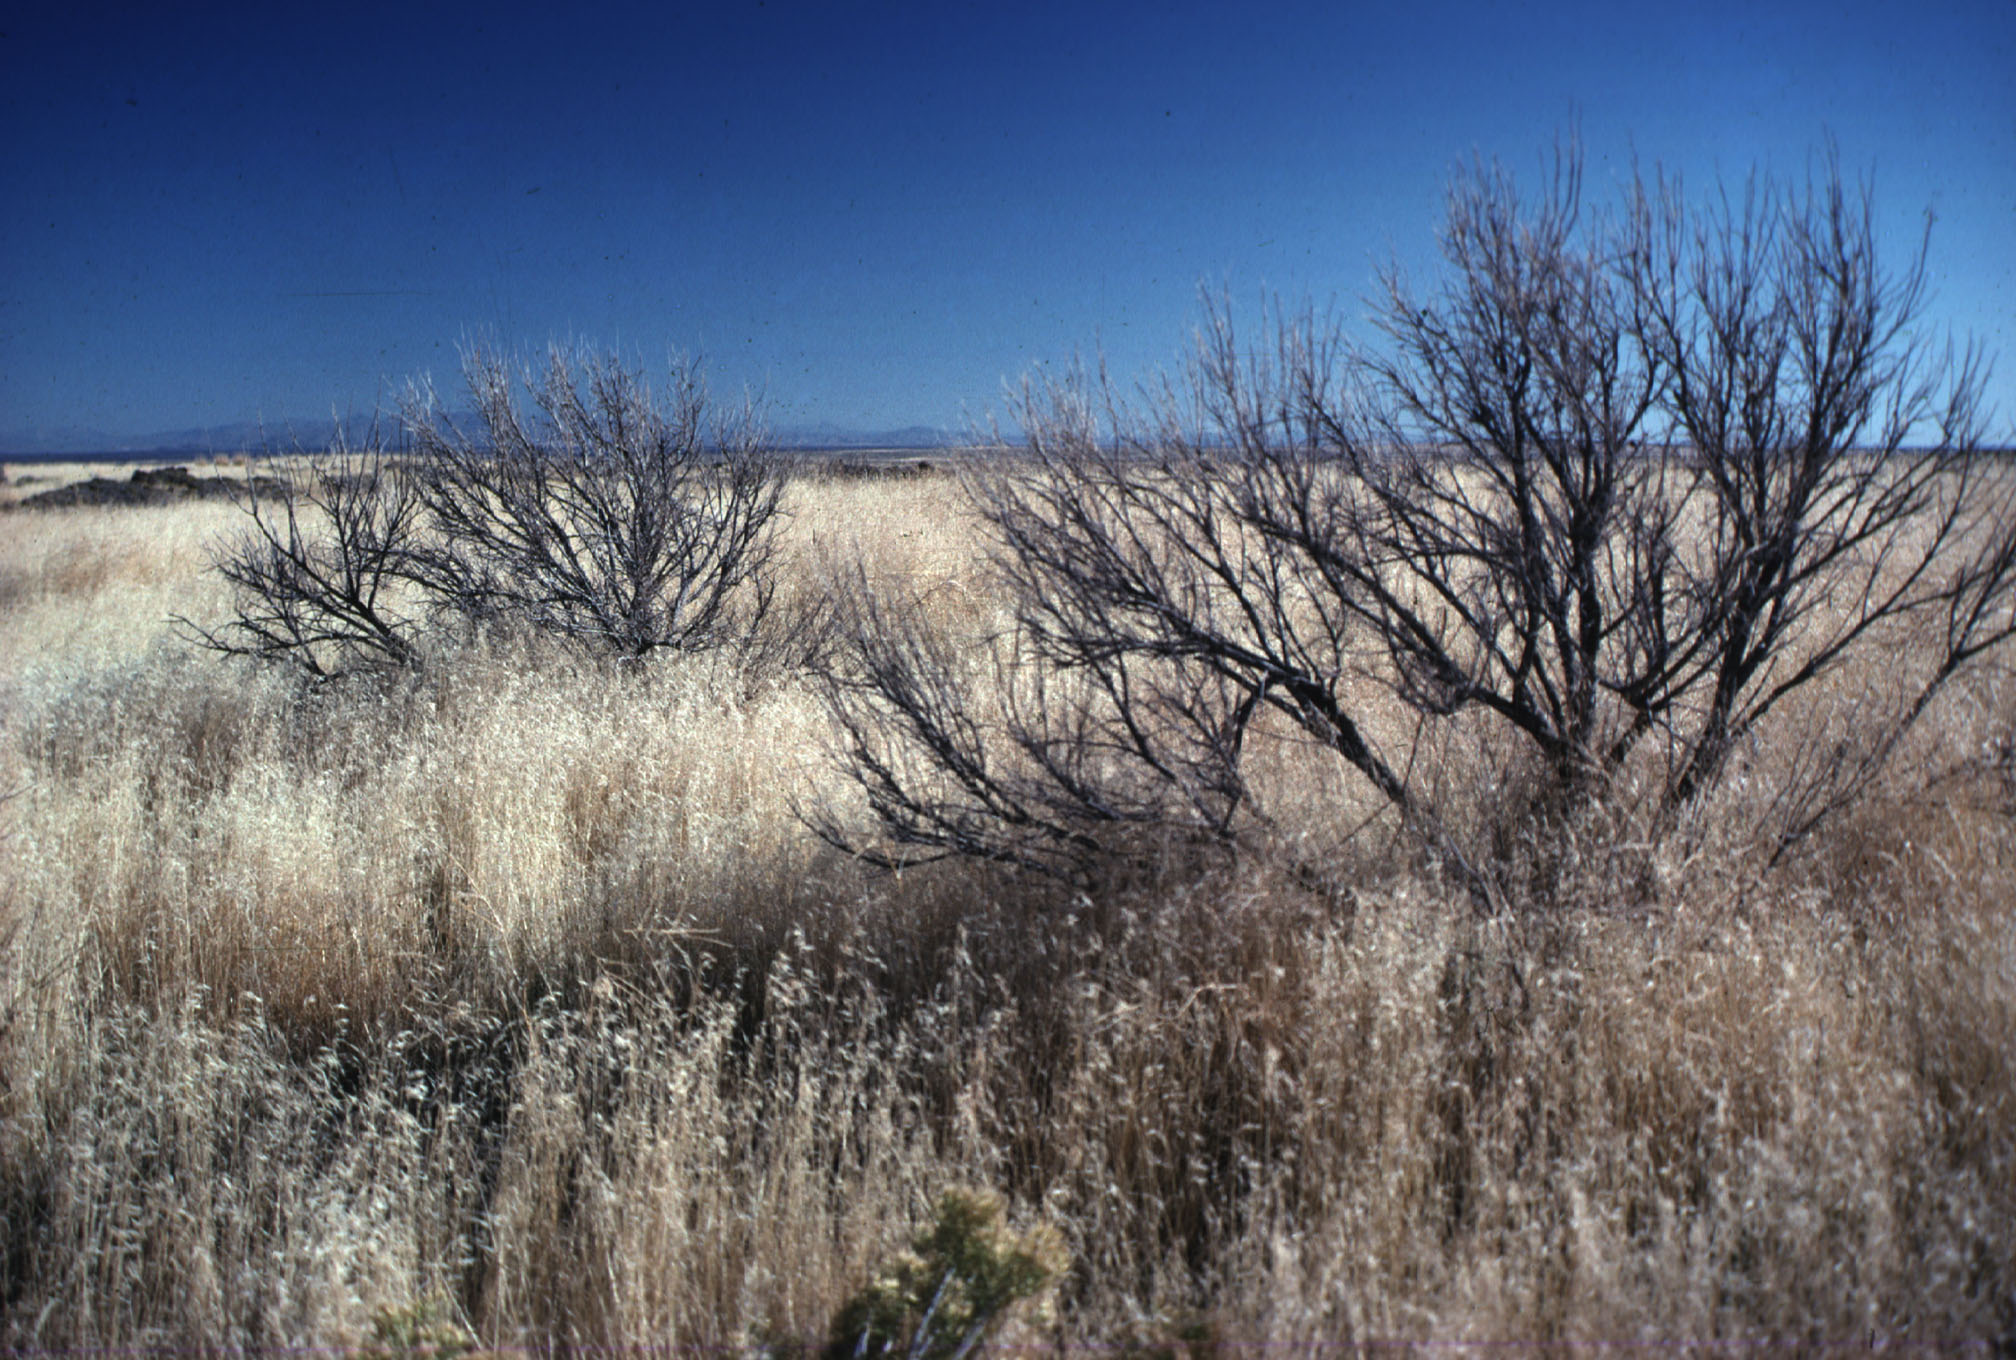 Burned sagebrush skeleton surrounded by cheatgrass. Photo by Mike Pellant.